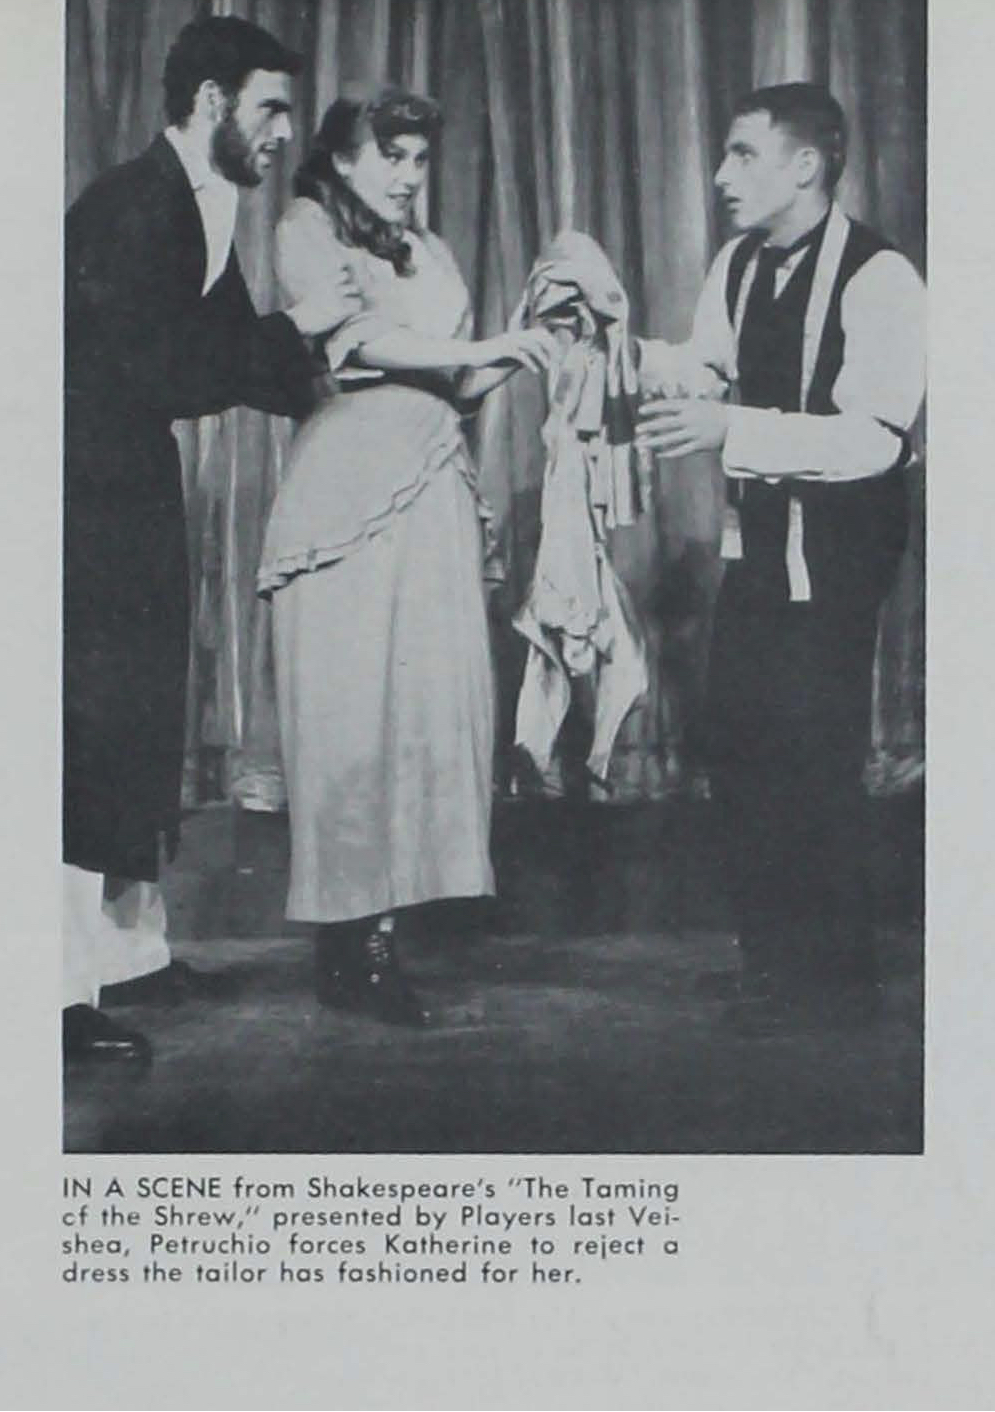 A black and white yearbook photo showing three students on stage during a Shakespeare play.